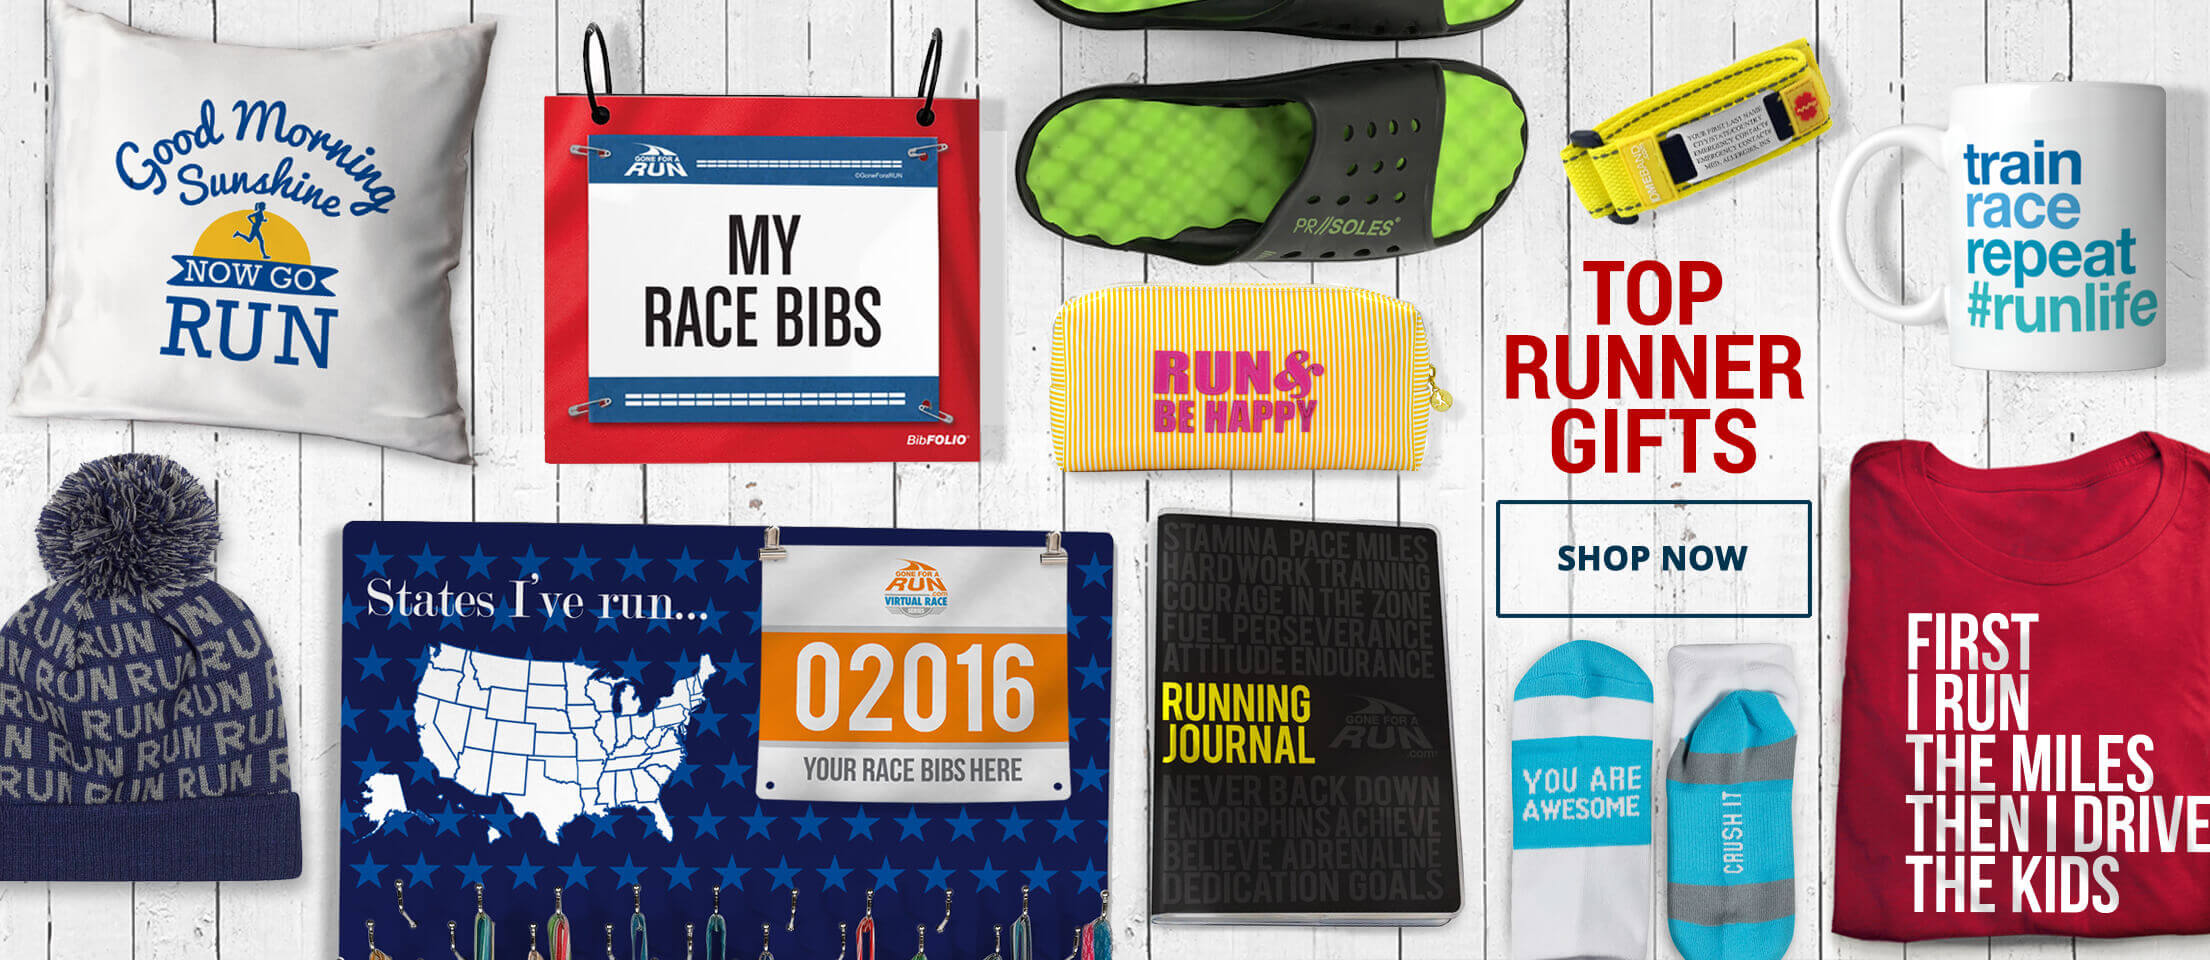 Top Runner gifts